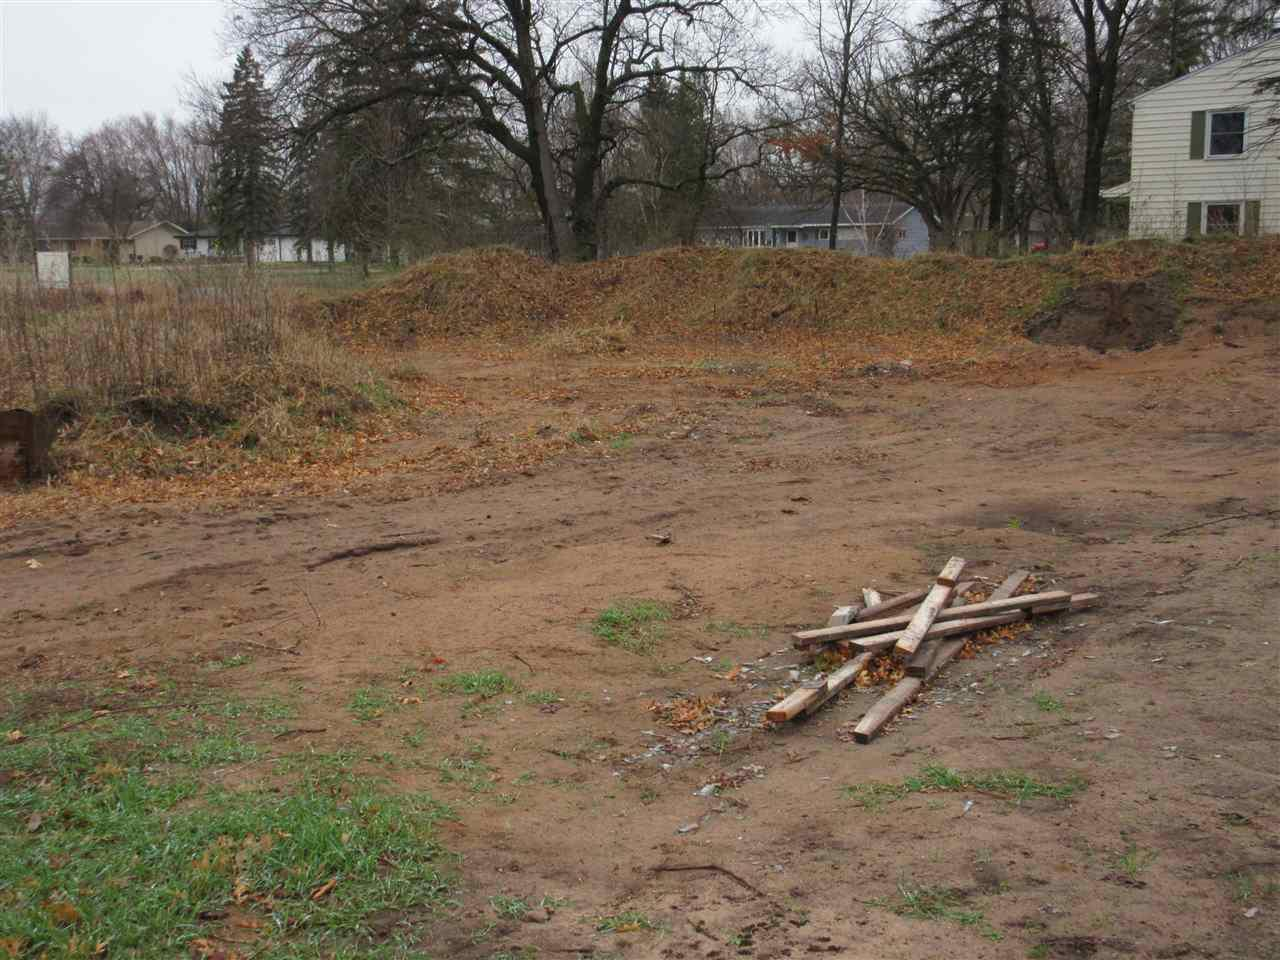 Buildable lot in newer residential development on Stevens Point NE Side!  All utilities to lot, walking distance to elementary school, shopping and Green Circle Trail!  Restrictive covenants in place to protect your investment.